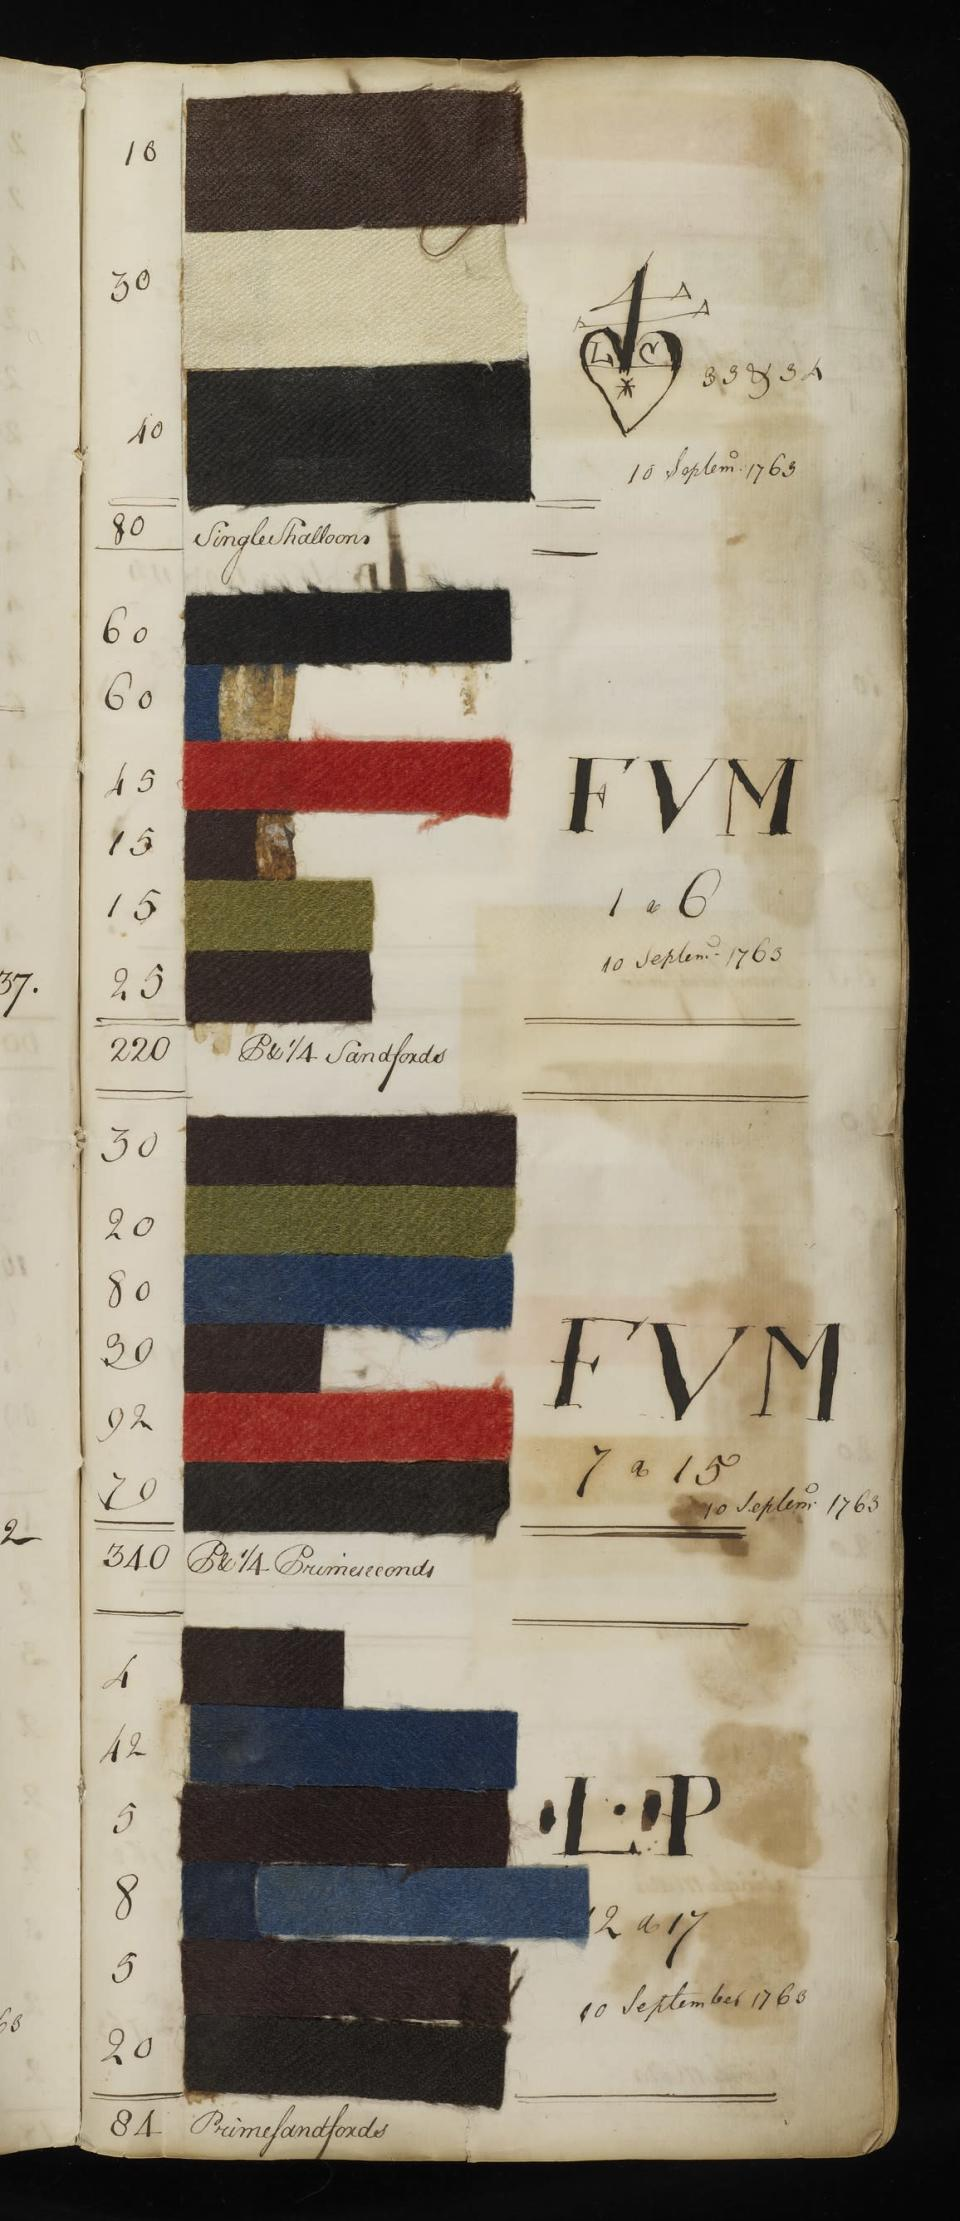 The 18th century fabric was discovered accidentally in an archive in London (University of Exeter/PA).